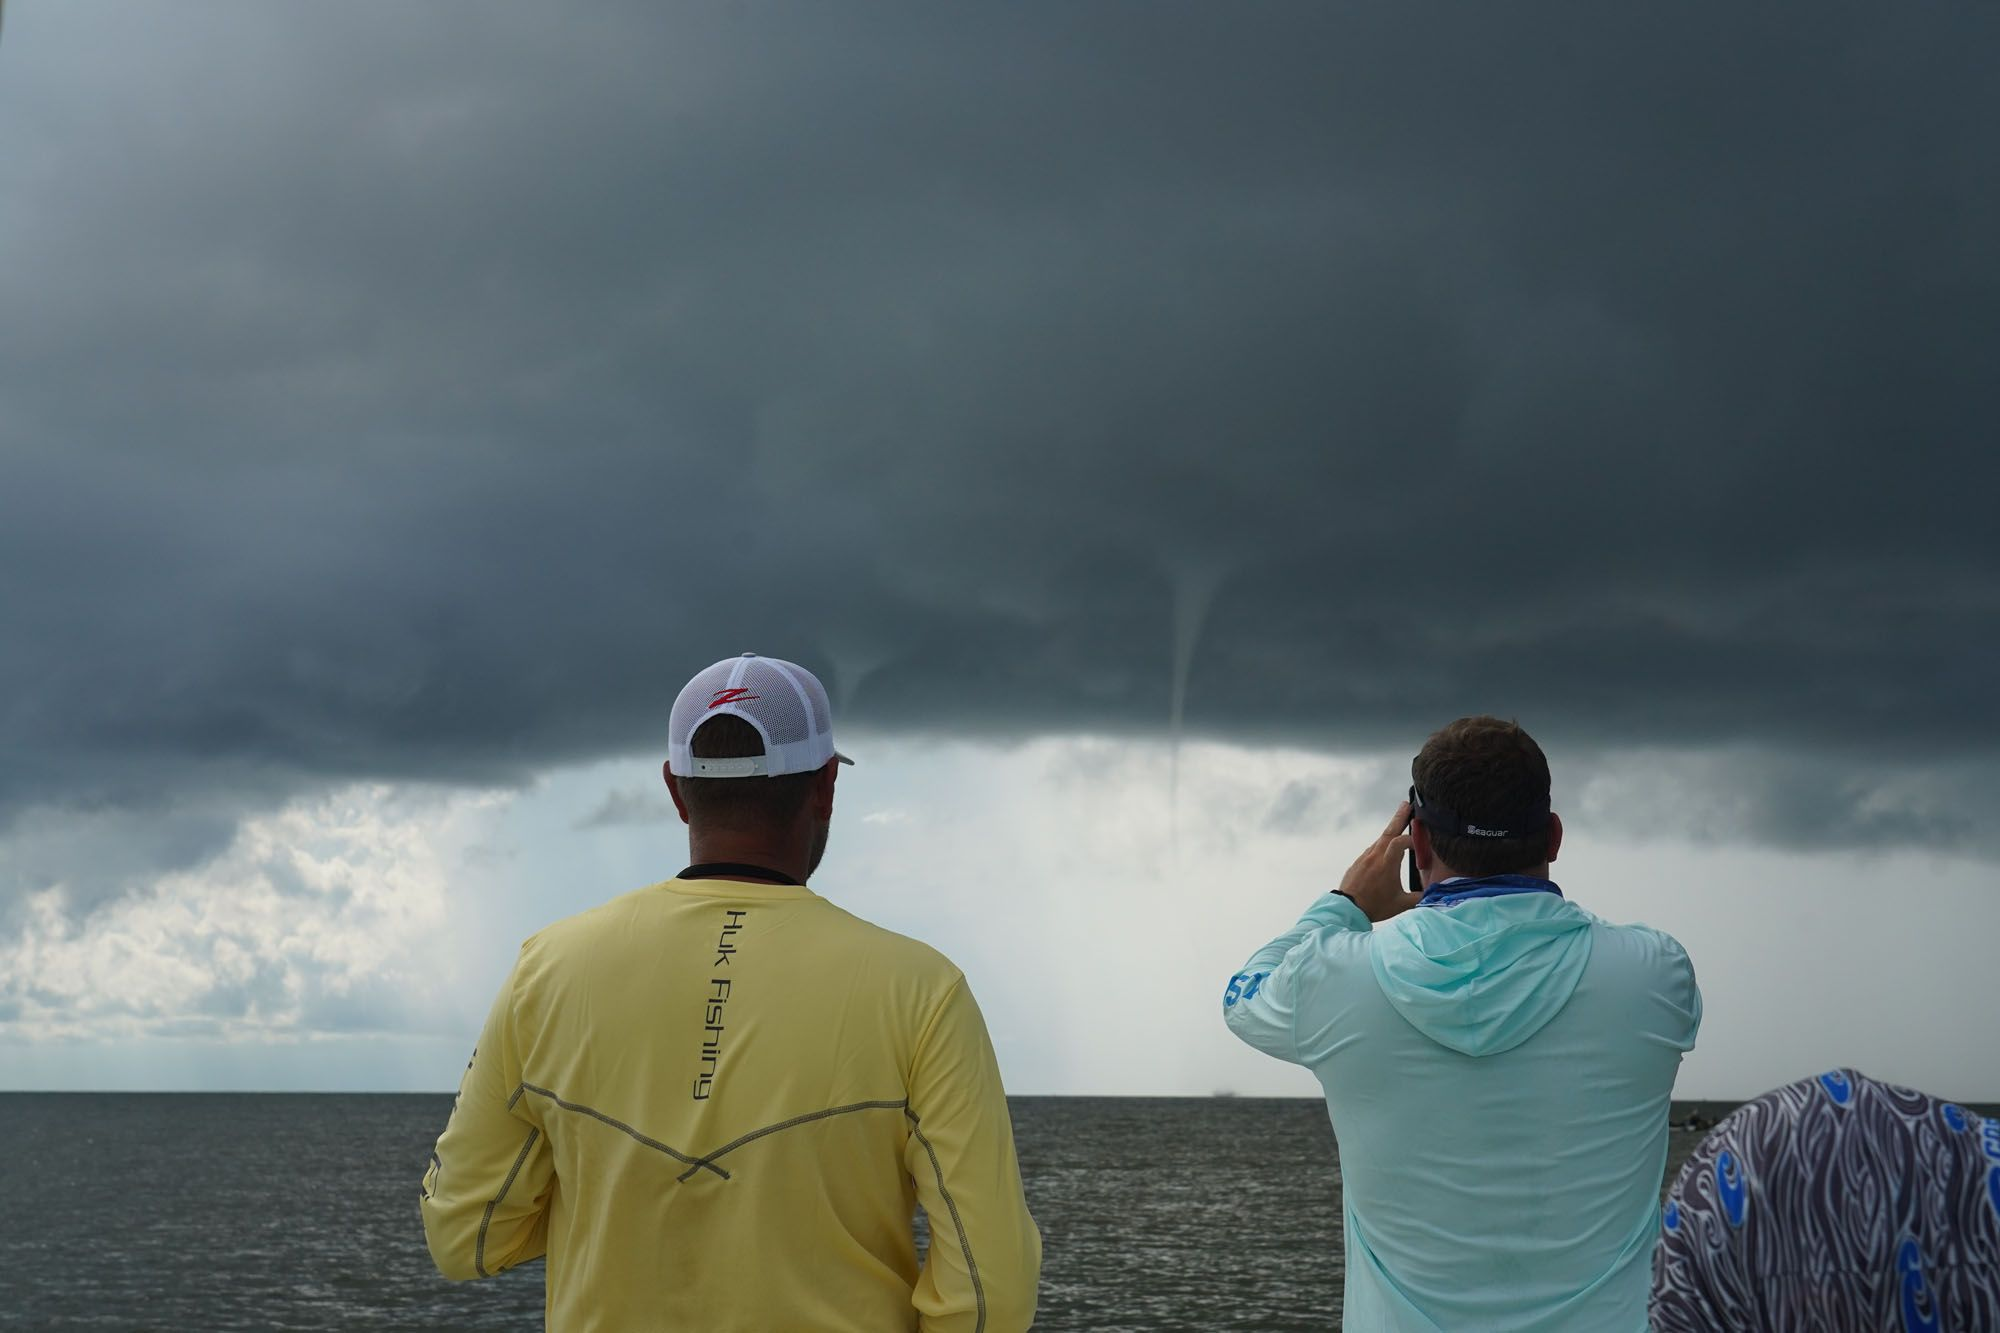 Time to move on. These waterspouts developed quickly. This one has already touched down; look closely at the horizon beneath the elbow of Brian Evans with Seaguar, and you can see the vortex whipping the water. As the black curtain descended, we hightailed it to the coast.